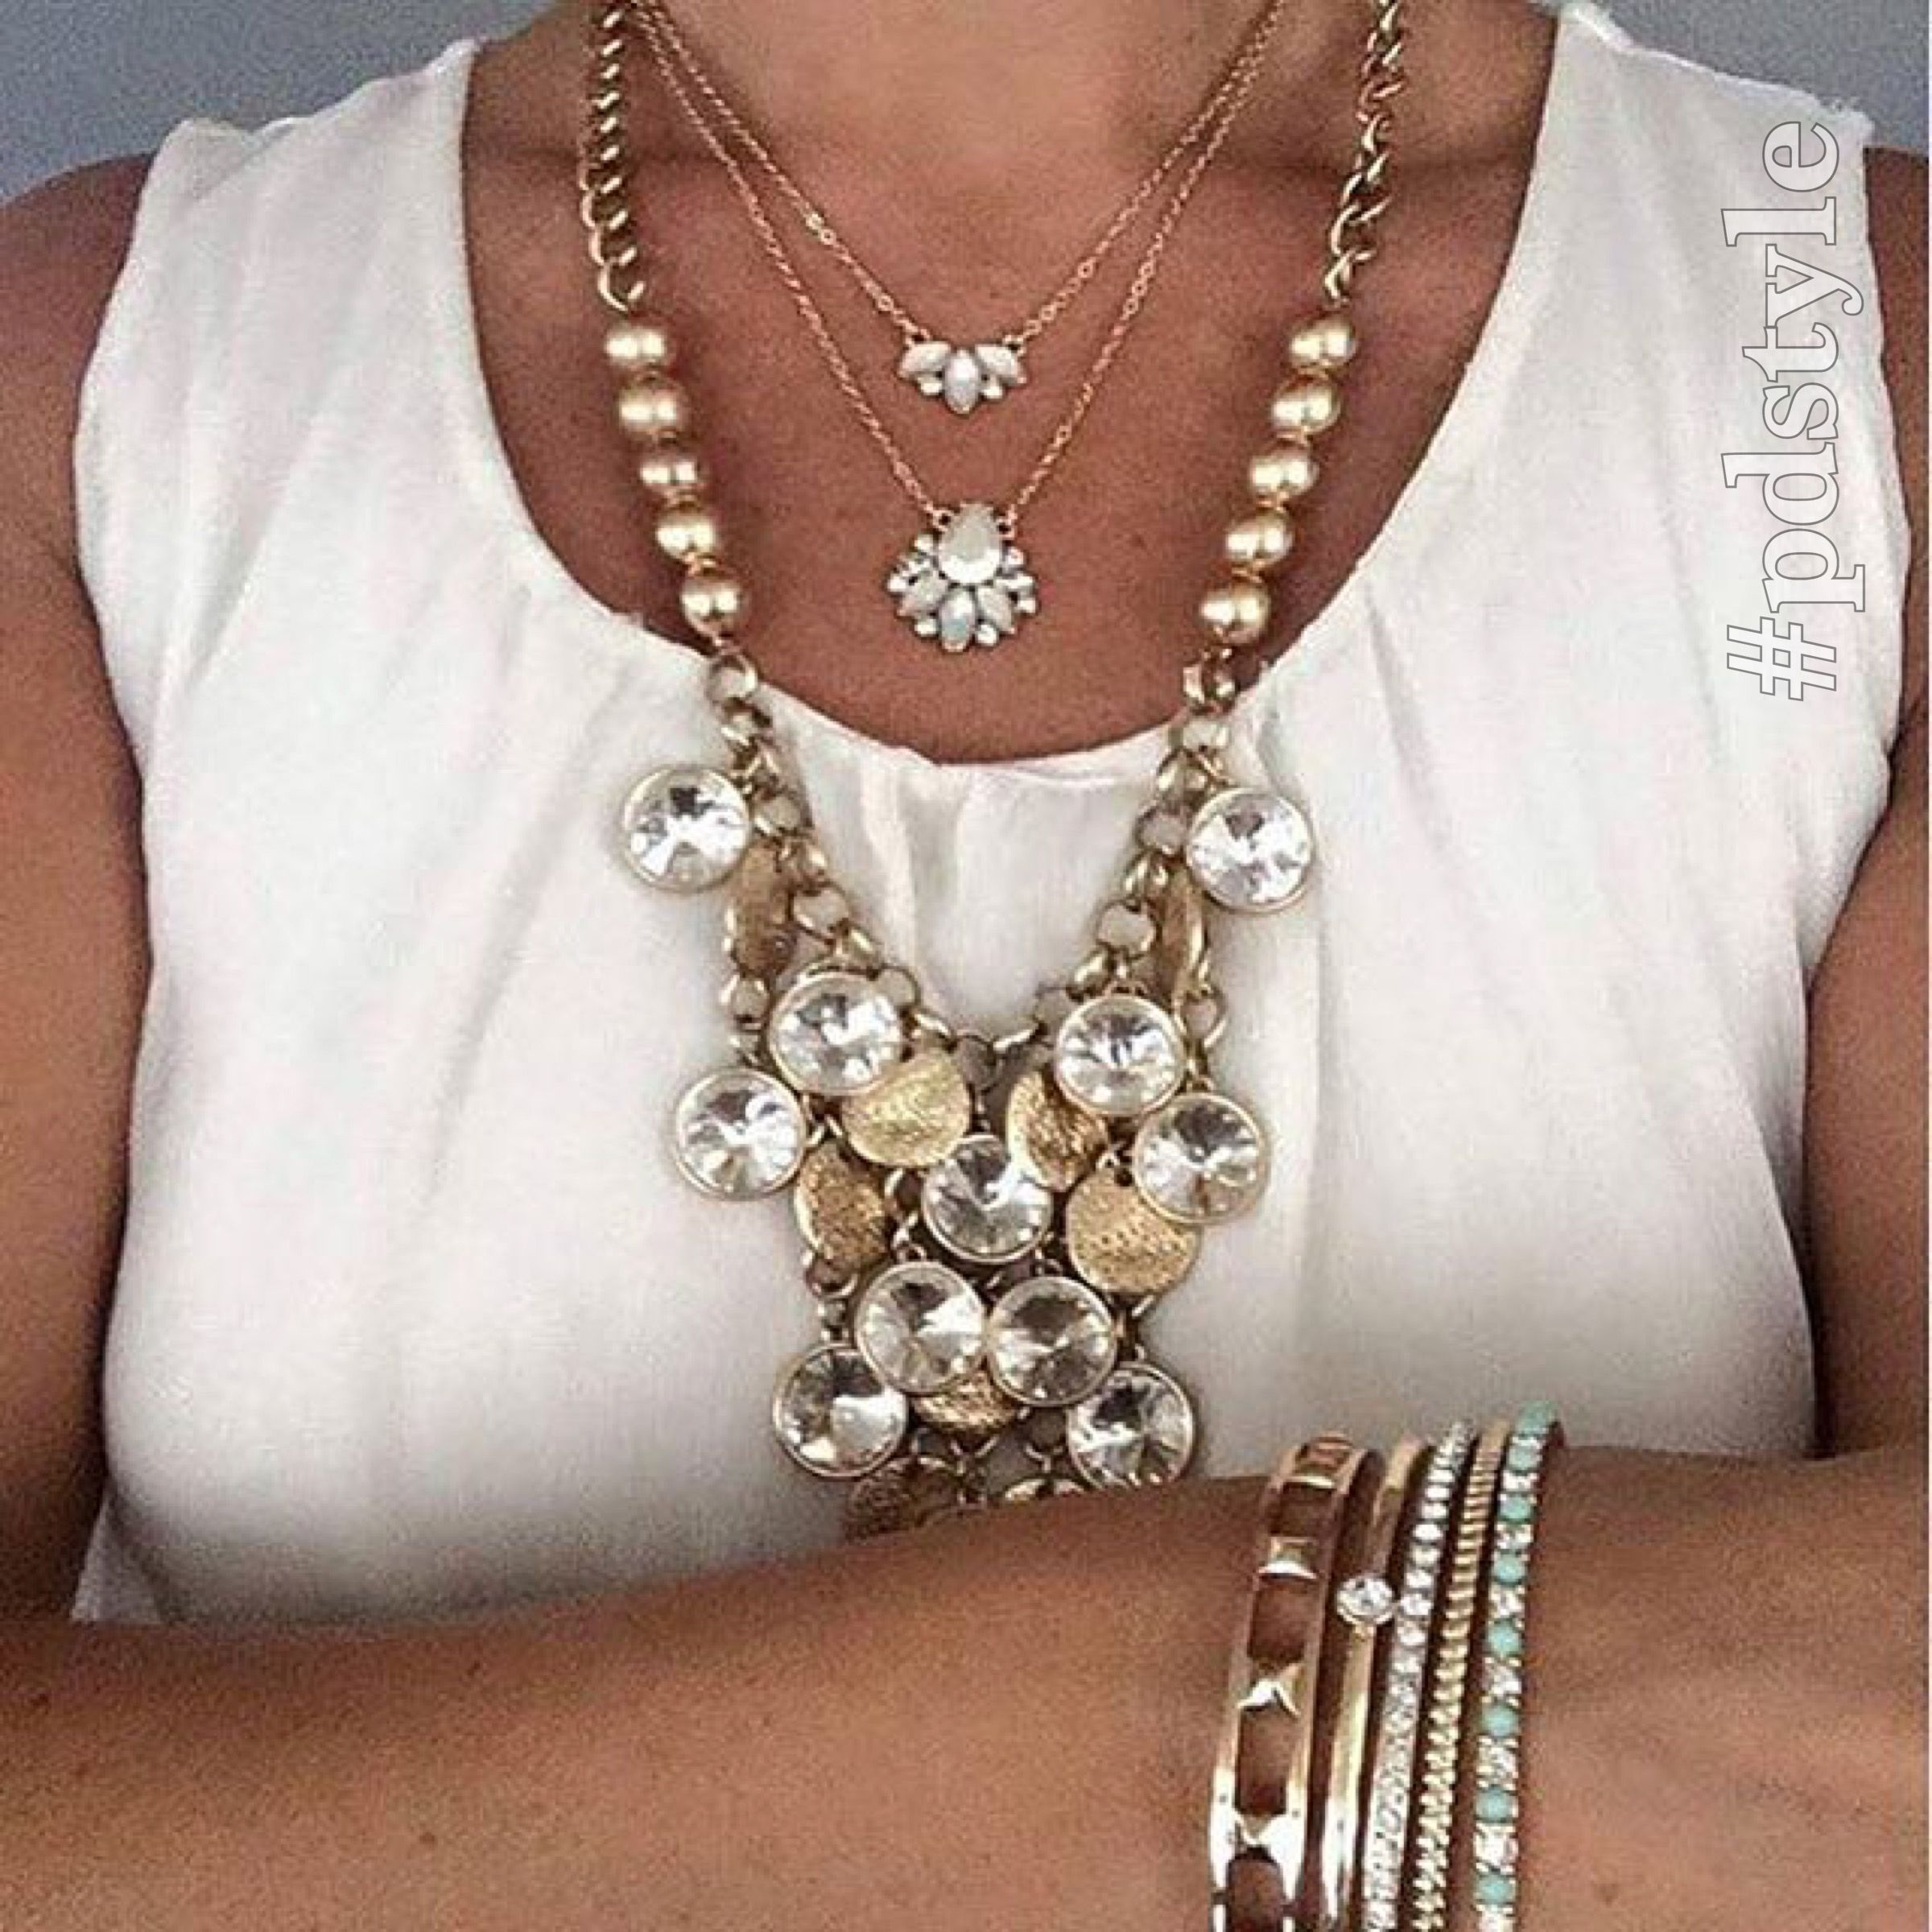 Pin By Jessica Brown On Premier Designs Jewelry! In 2019